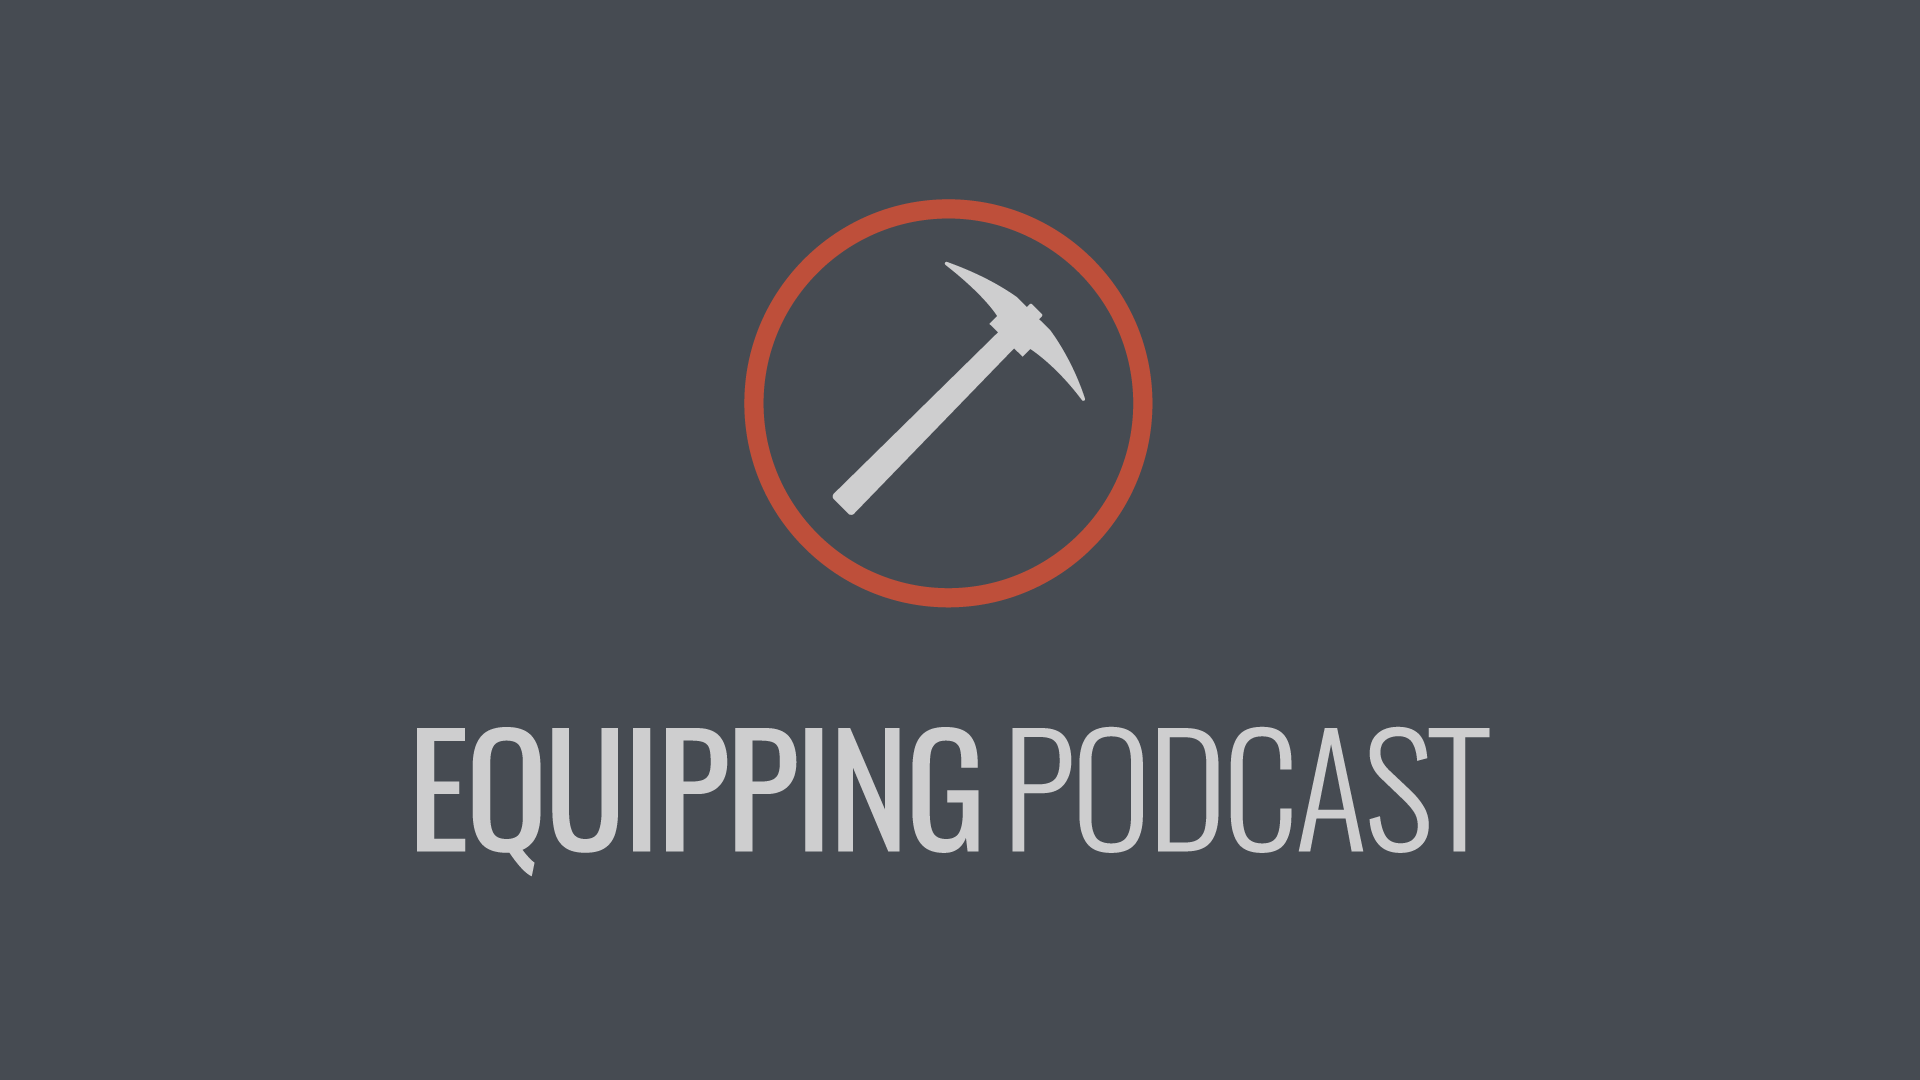 Equipping-Podcast-Logo-2color-RedGrey-logo-on-DarkGrey-Bkgd